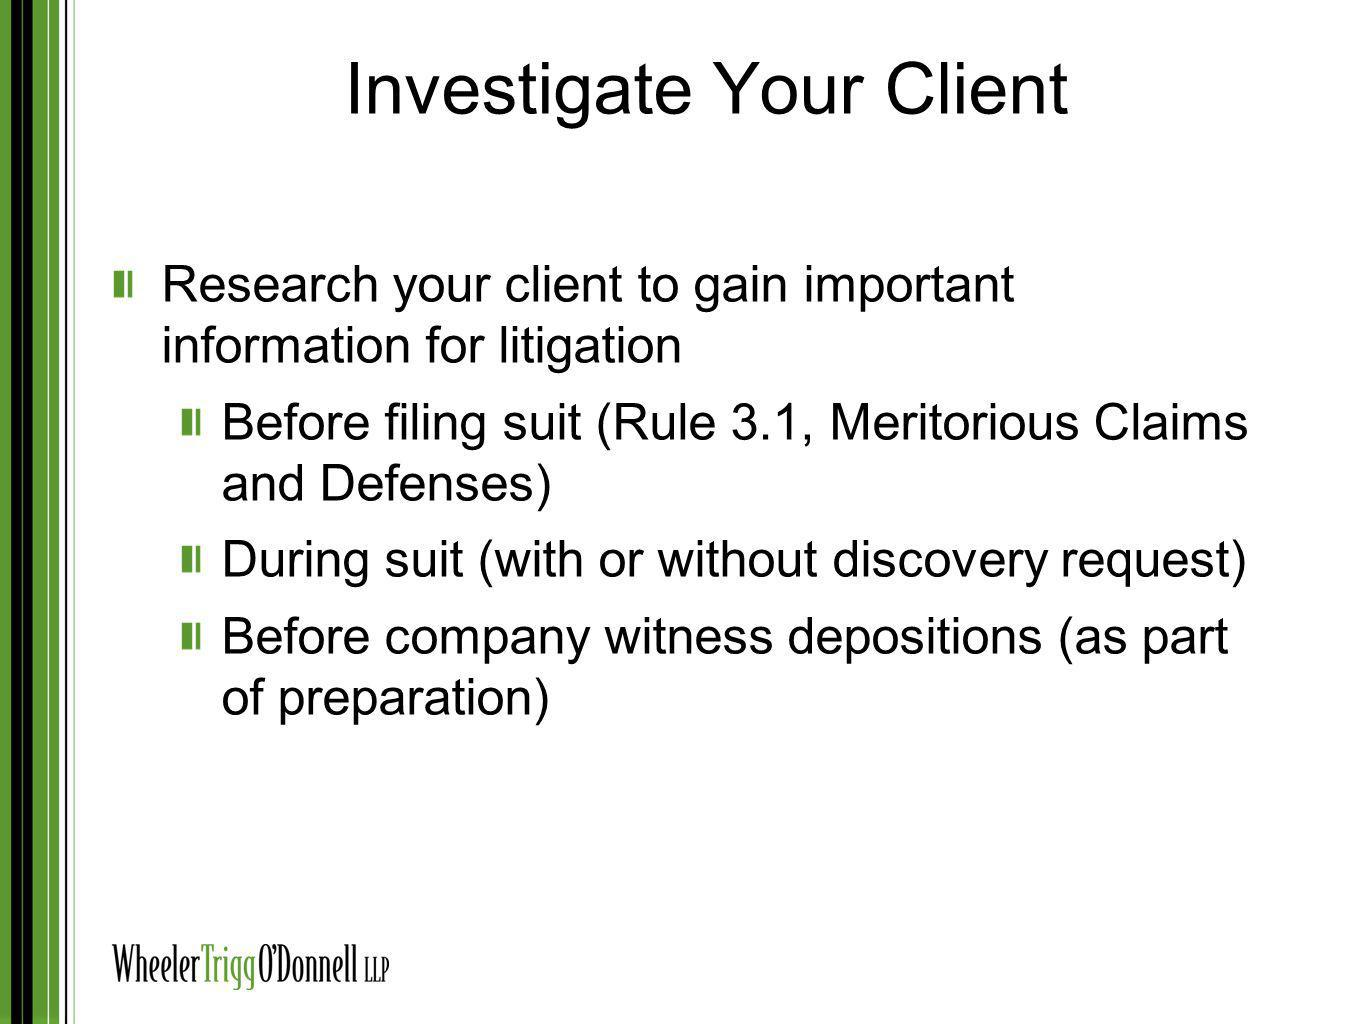 Investigate Your Client Research your client to gain important information for litigation Before filing suit (Rule 3.1, Meritorious Claims and Defense